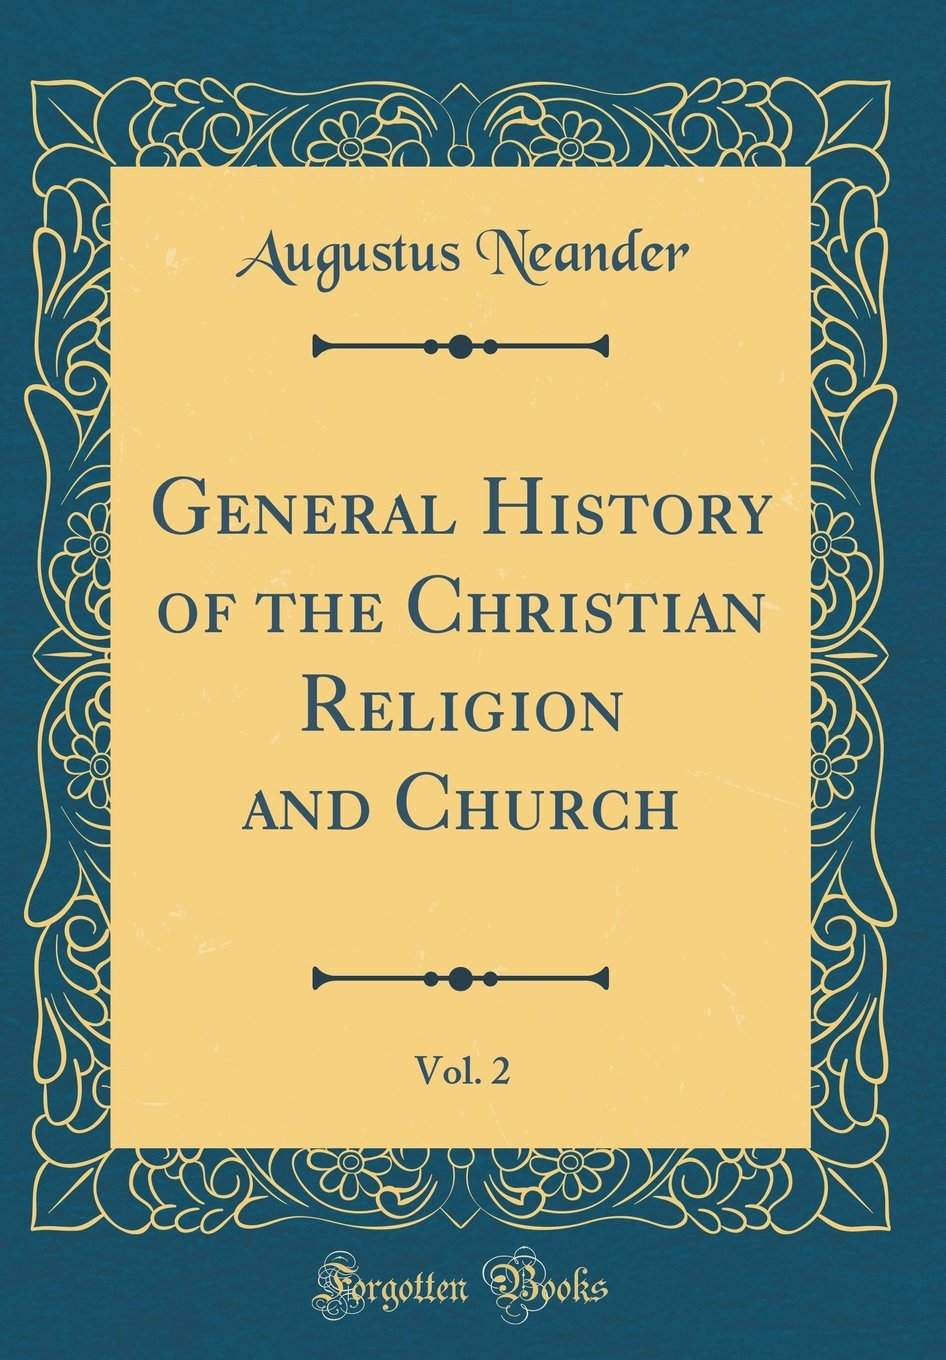 General History of the Christian Religion and Church, Vol. 2 (Classic Reprint) PDF